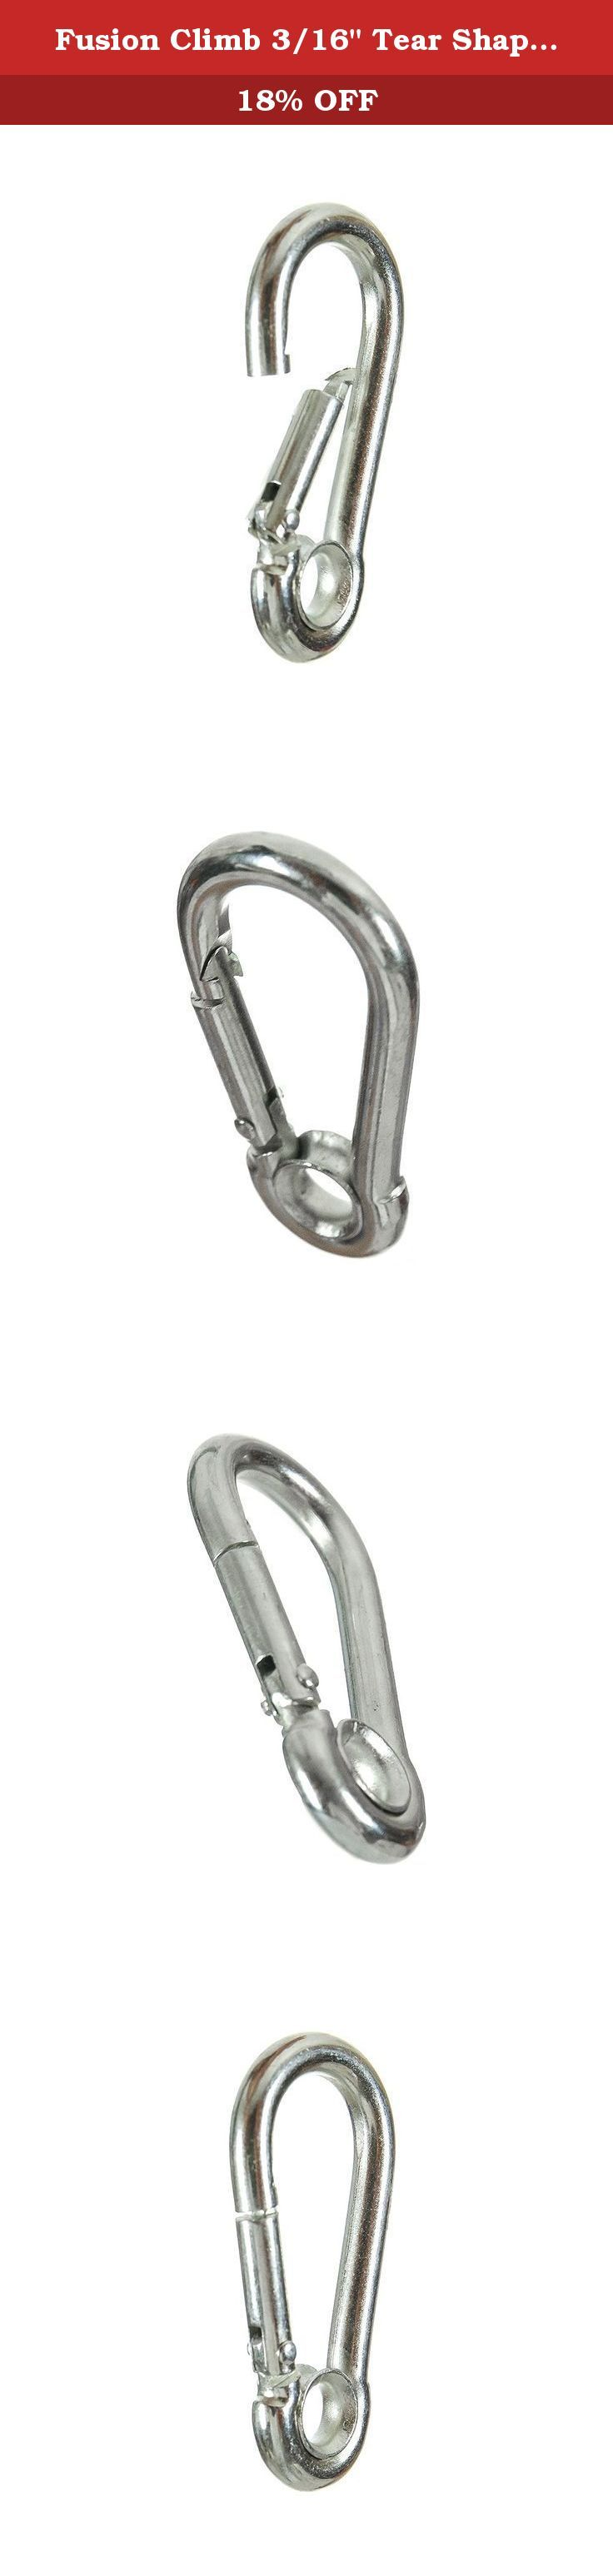 "Fusion Climb 3/16"" Tear Shape Stainless Steel Carabine Snap Hook, Silver. Fusion Climb 3/16"" Tear Shape Stainless Steel Carabine Snap Hook Silver - Stainless-steel, tear-shaped, carbine snap hook with a true captive eye and straight non-locking gate. - Available in various sizes and is a great choice for arborist and rescue applications. ."